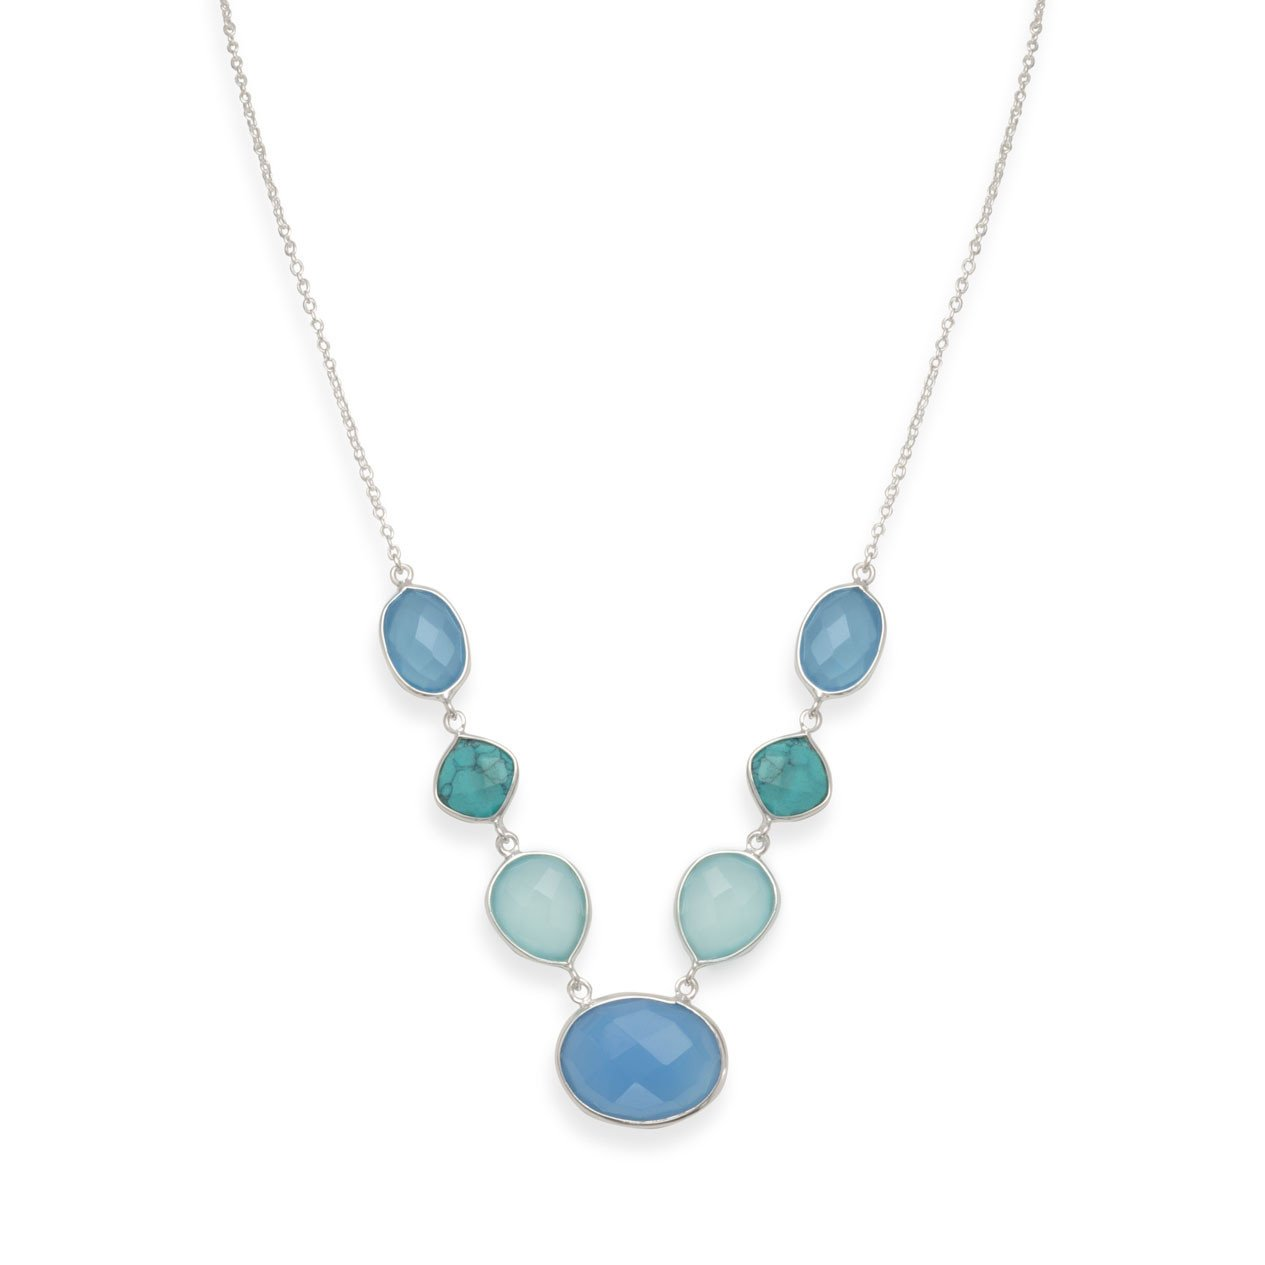 Stabilized Turquoise and Chalcedony Necklace